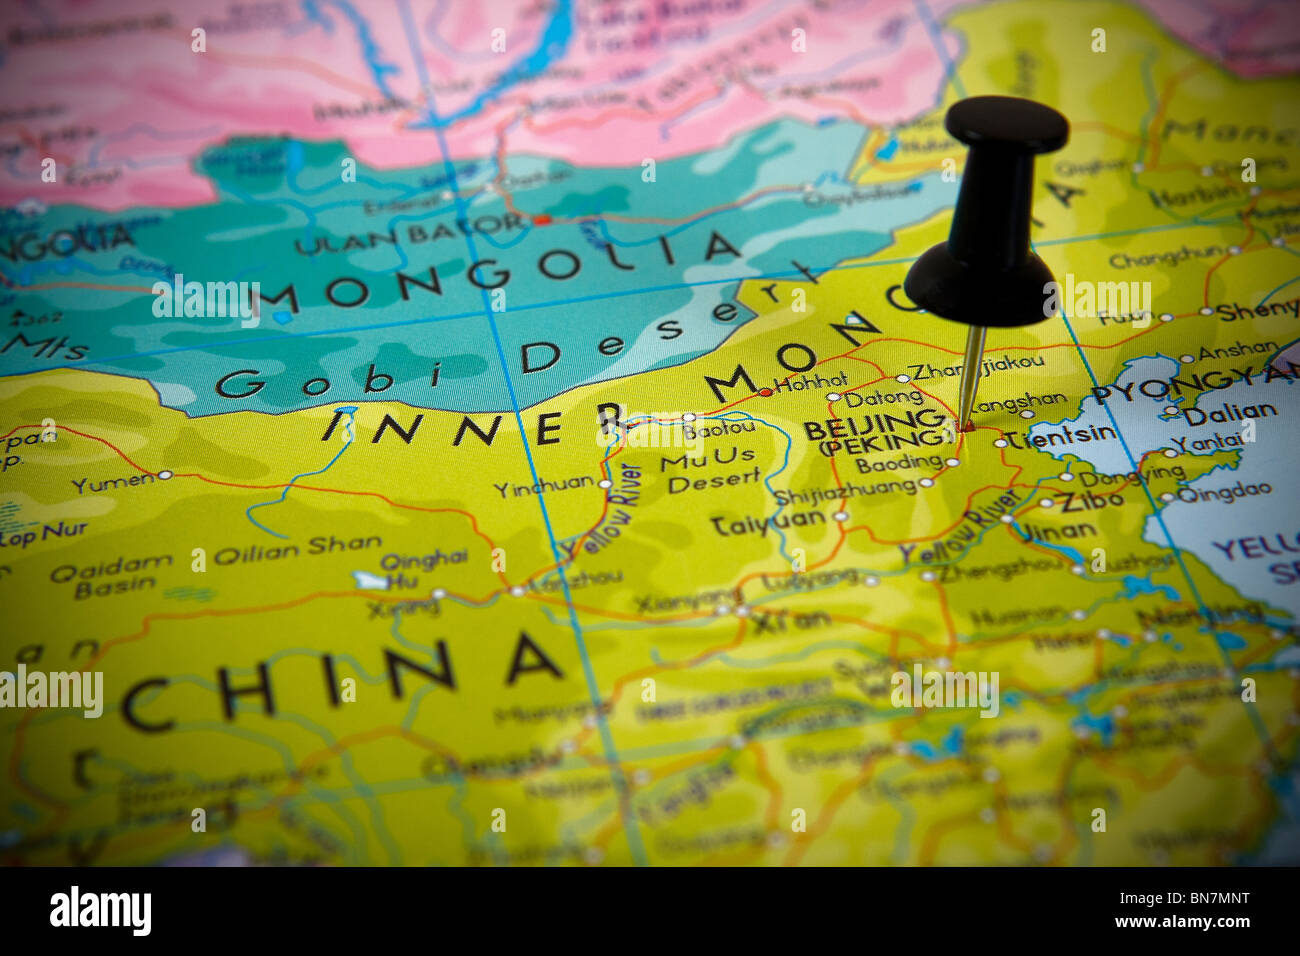 small pin pointing on beijing china in a map asia